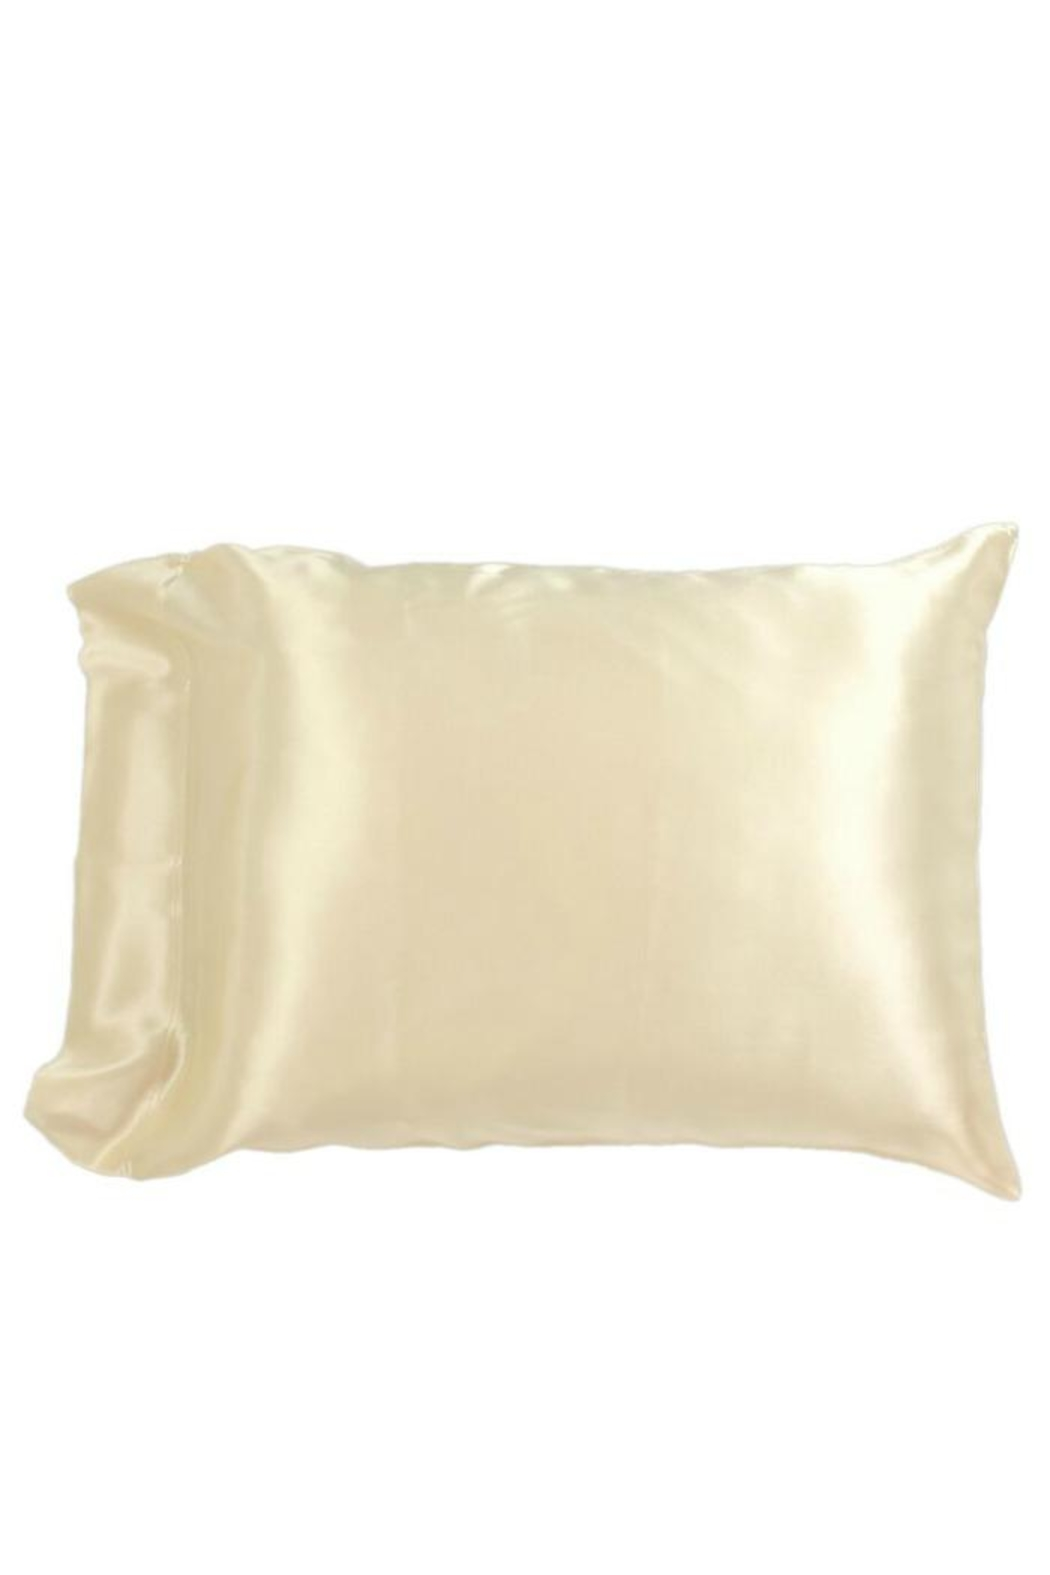 products fishers pillow pure mulberry pillowcases value momme home pillowcase dreams mulberrry exceptional finery tranquil bedding silk